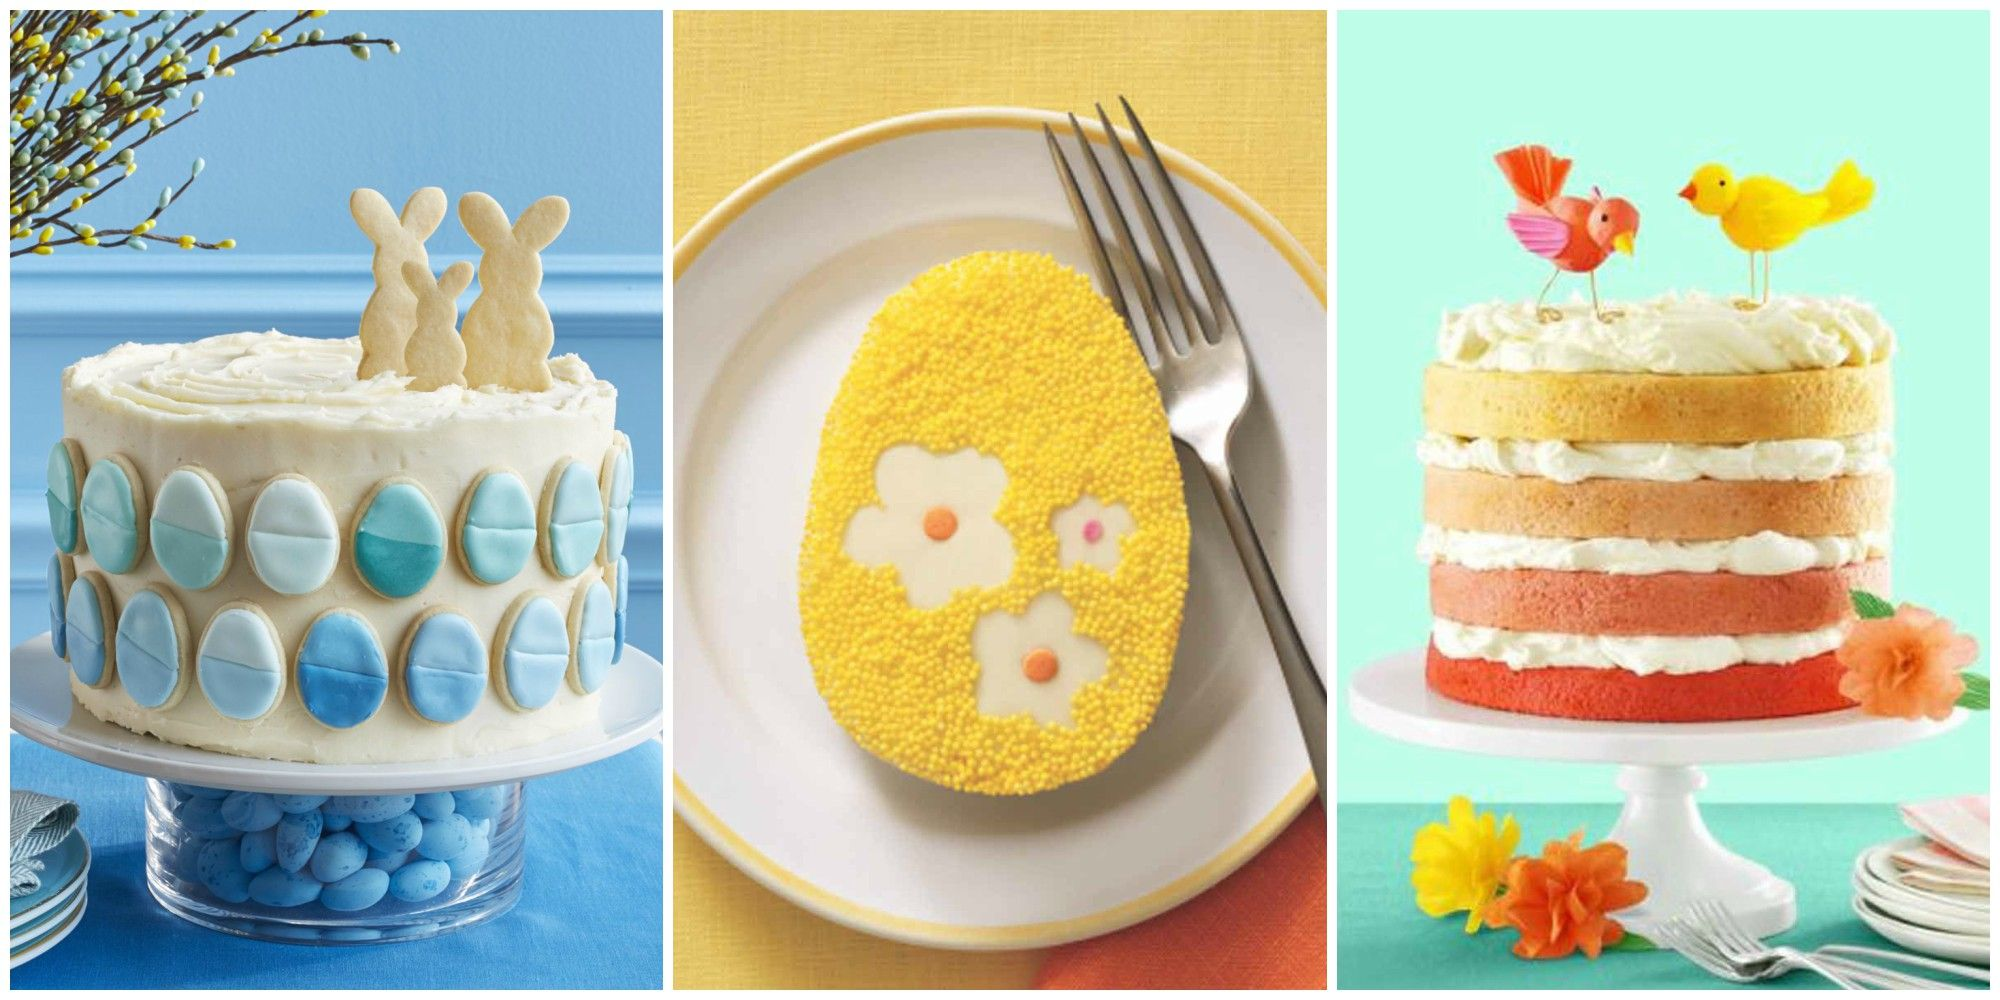 26 Best Easter Cakes Ideas Recipes for Cute Easter Cakes